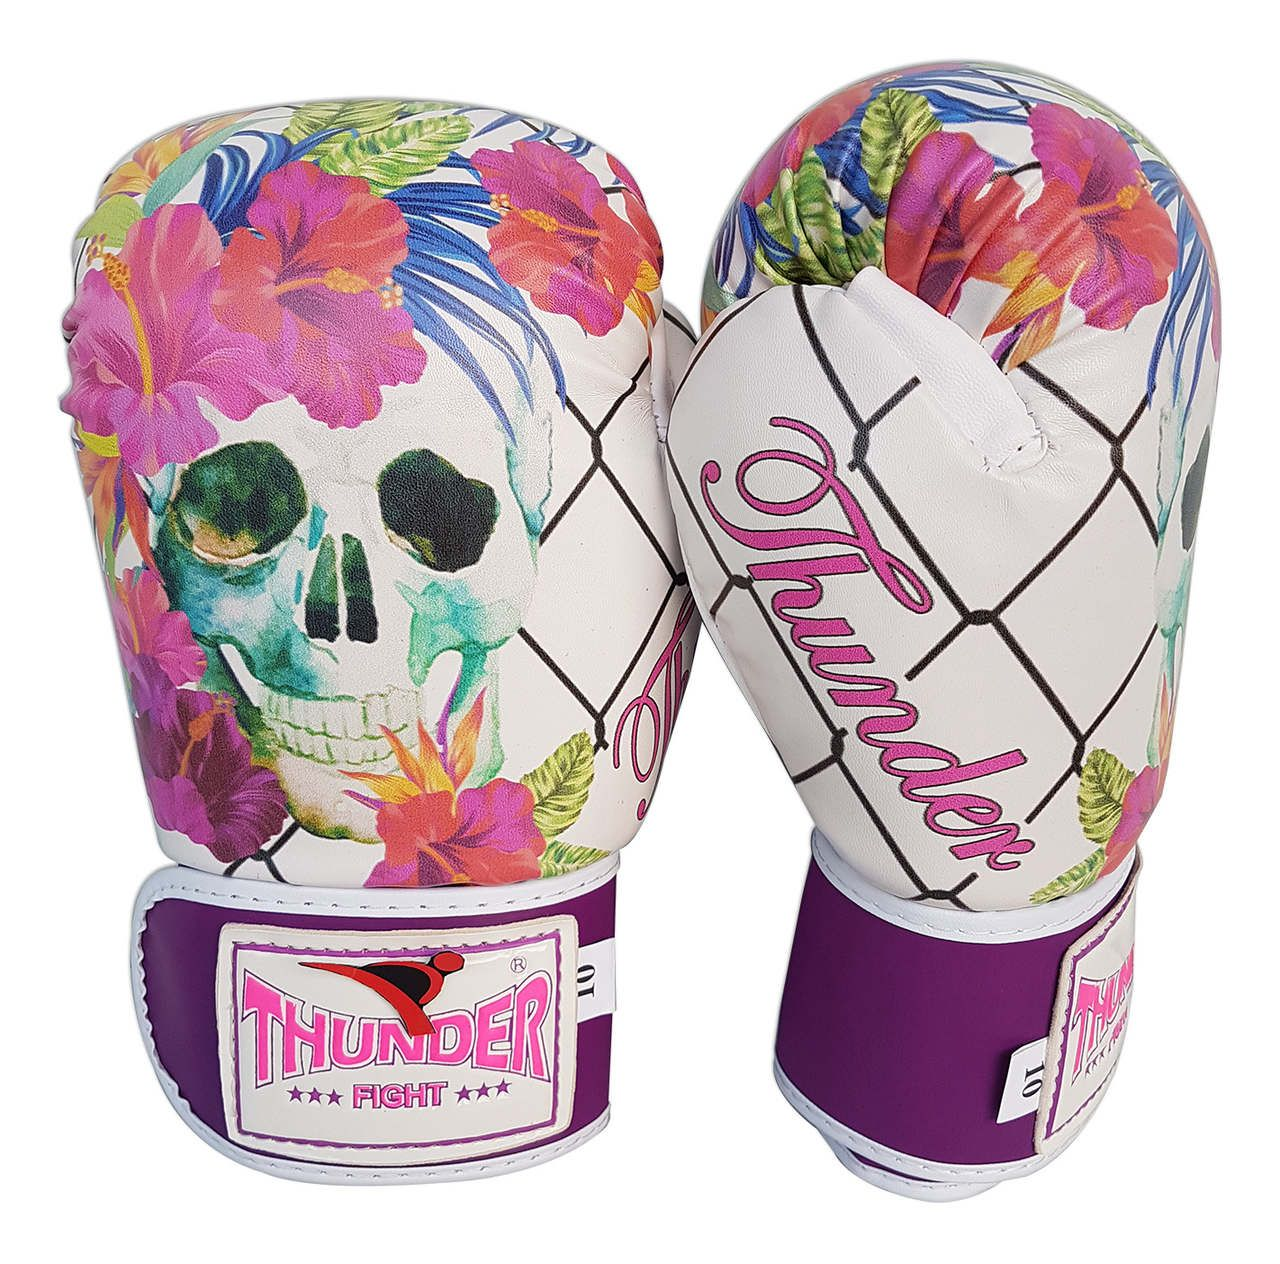 Kit de Muay Thai / Kickboxing Feminino 12oz - Caveira Grade - Thunder Fight  - PRALUTA SHOP